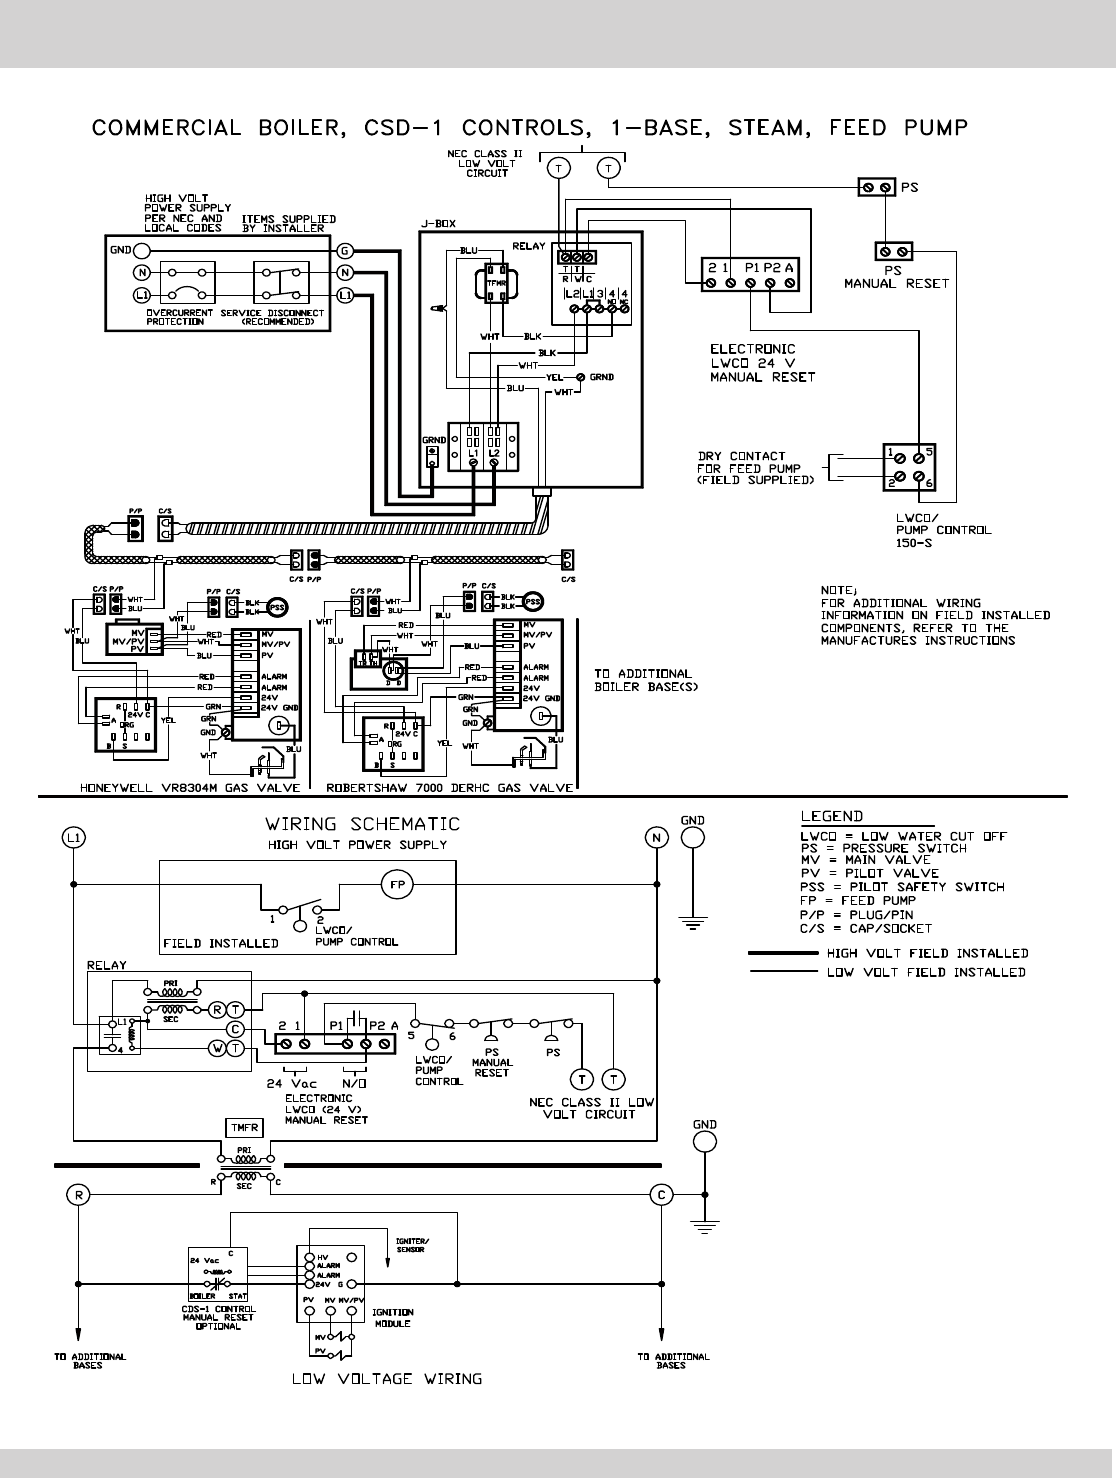 Steam Boiler Electrical Wiring